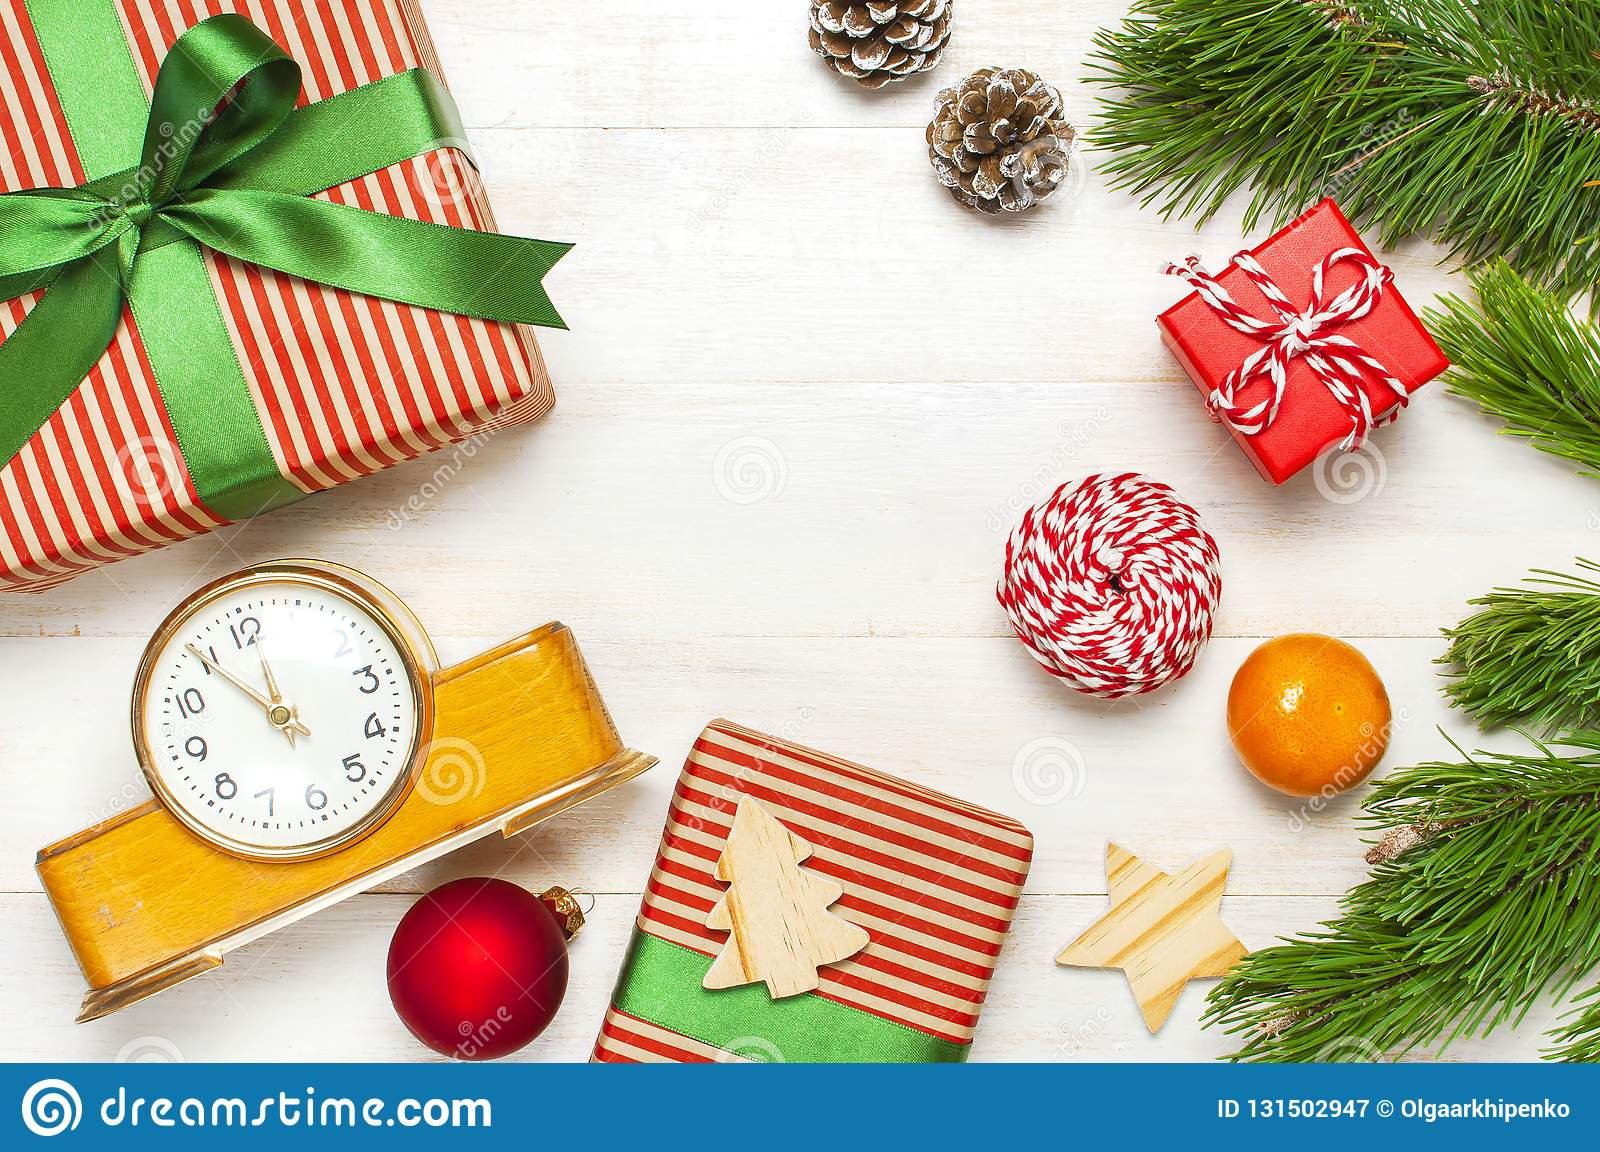 New Year Or Christmas Background Retro Alarm Clock Pine Branches Cones Gifts Presents Toys Red Ball On White Wooden Stock Image Image Of Deadline Celebration 131502947